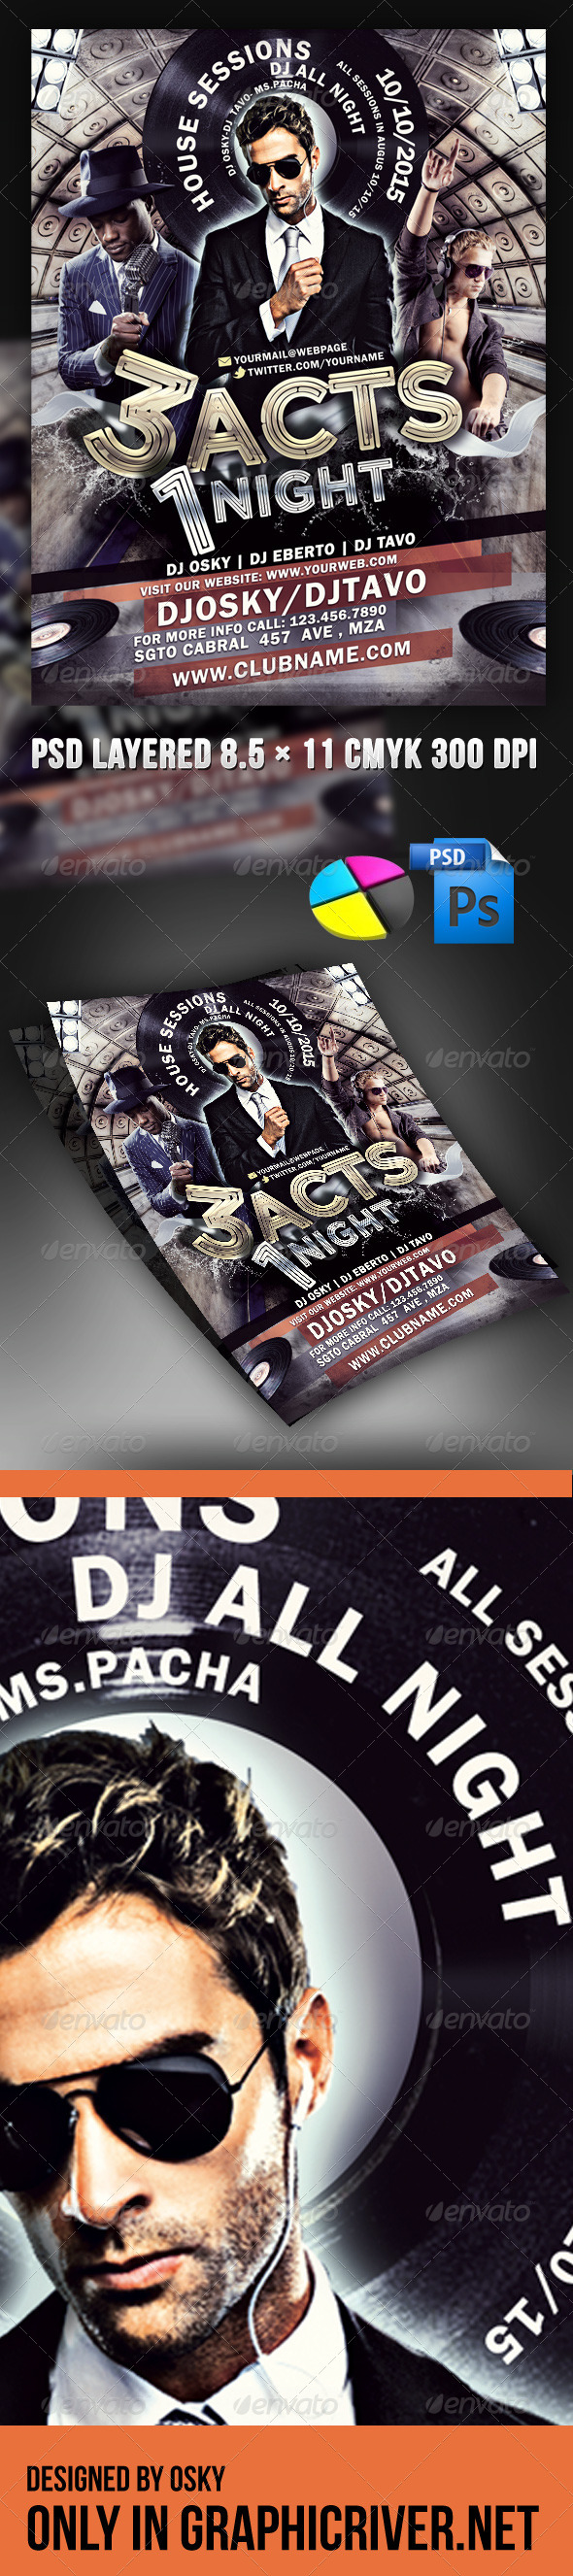 GraphicRiver 3 Acts 1 Night Party 4079911